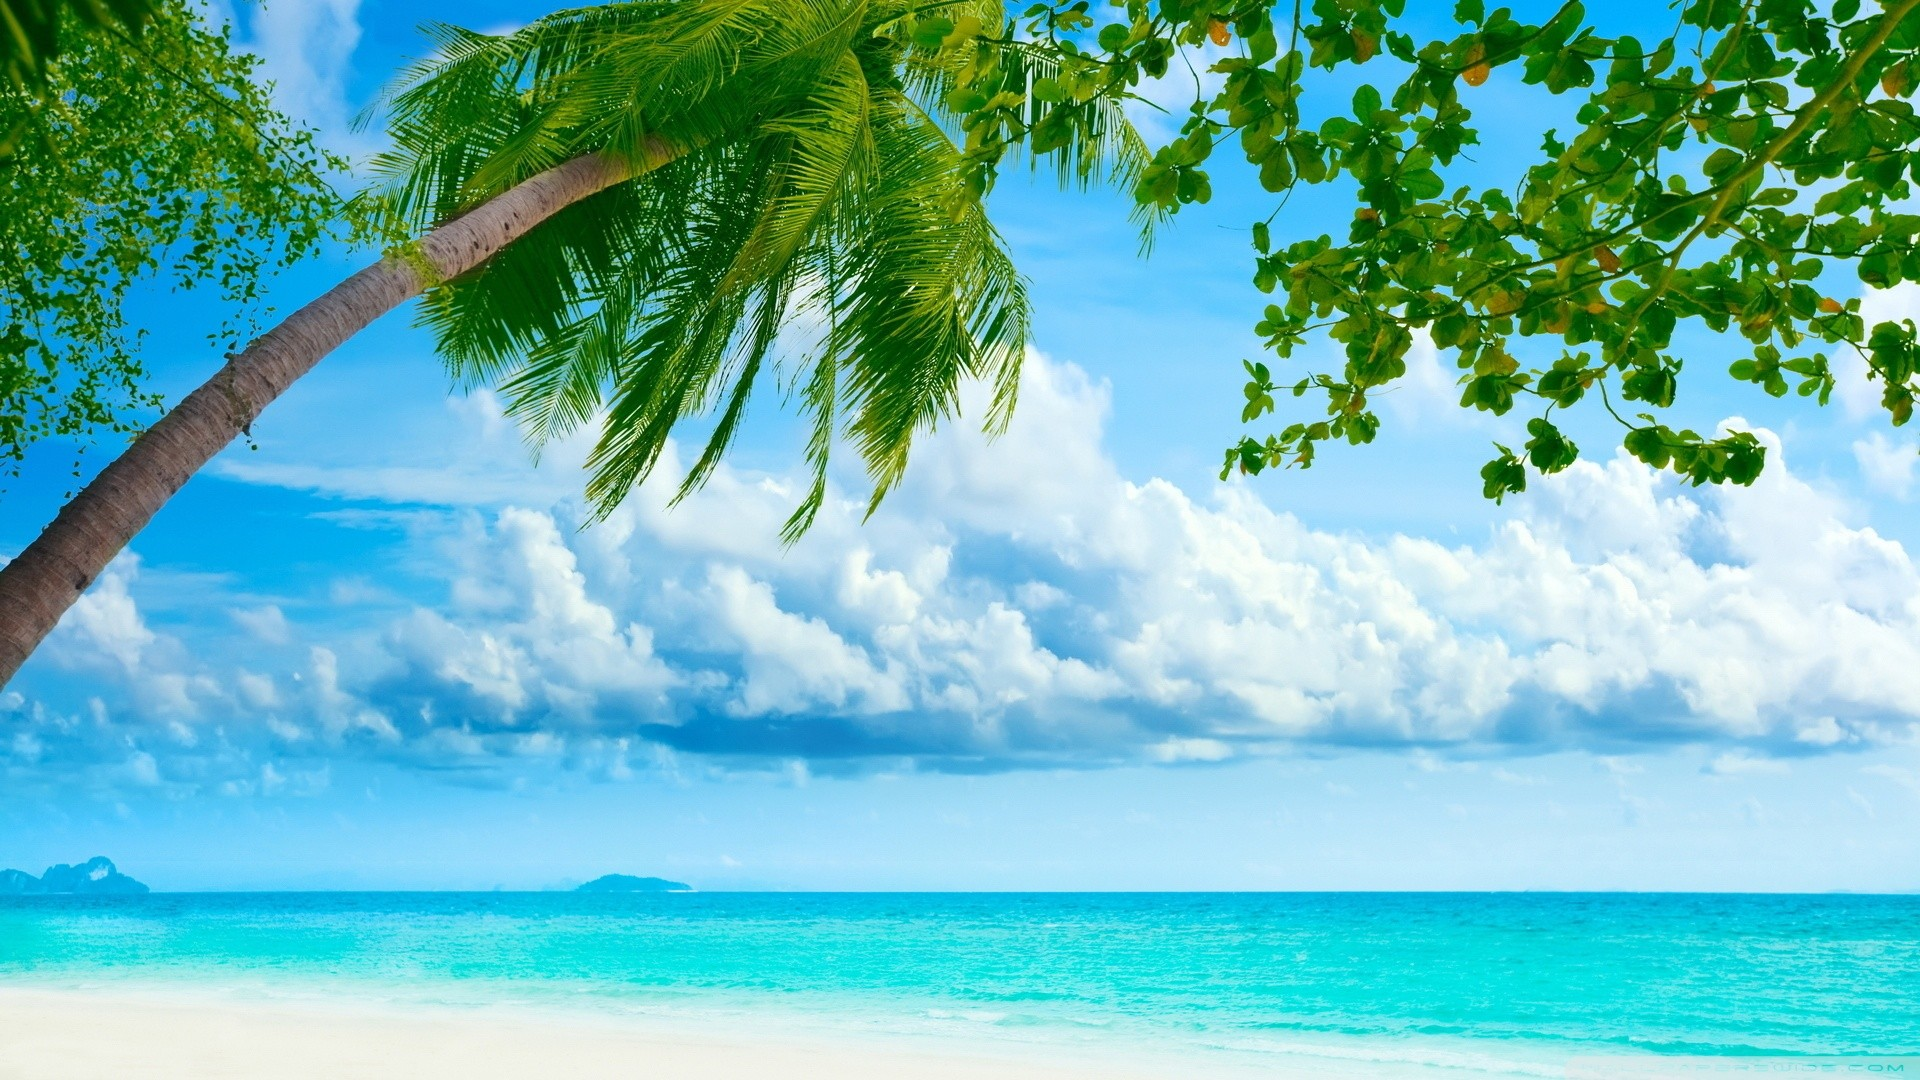 beach tropical hd wallpaper wallpapers55com   Best Wallpapers for 1920x1080